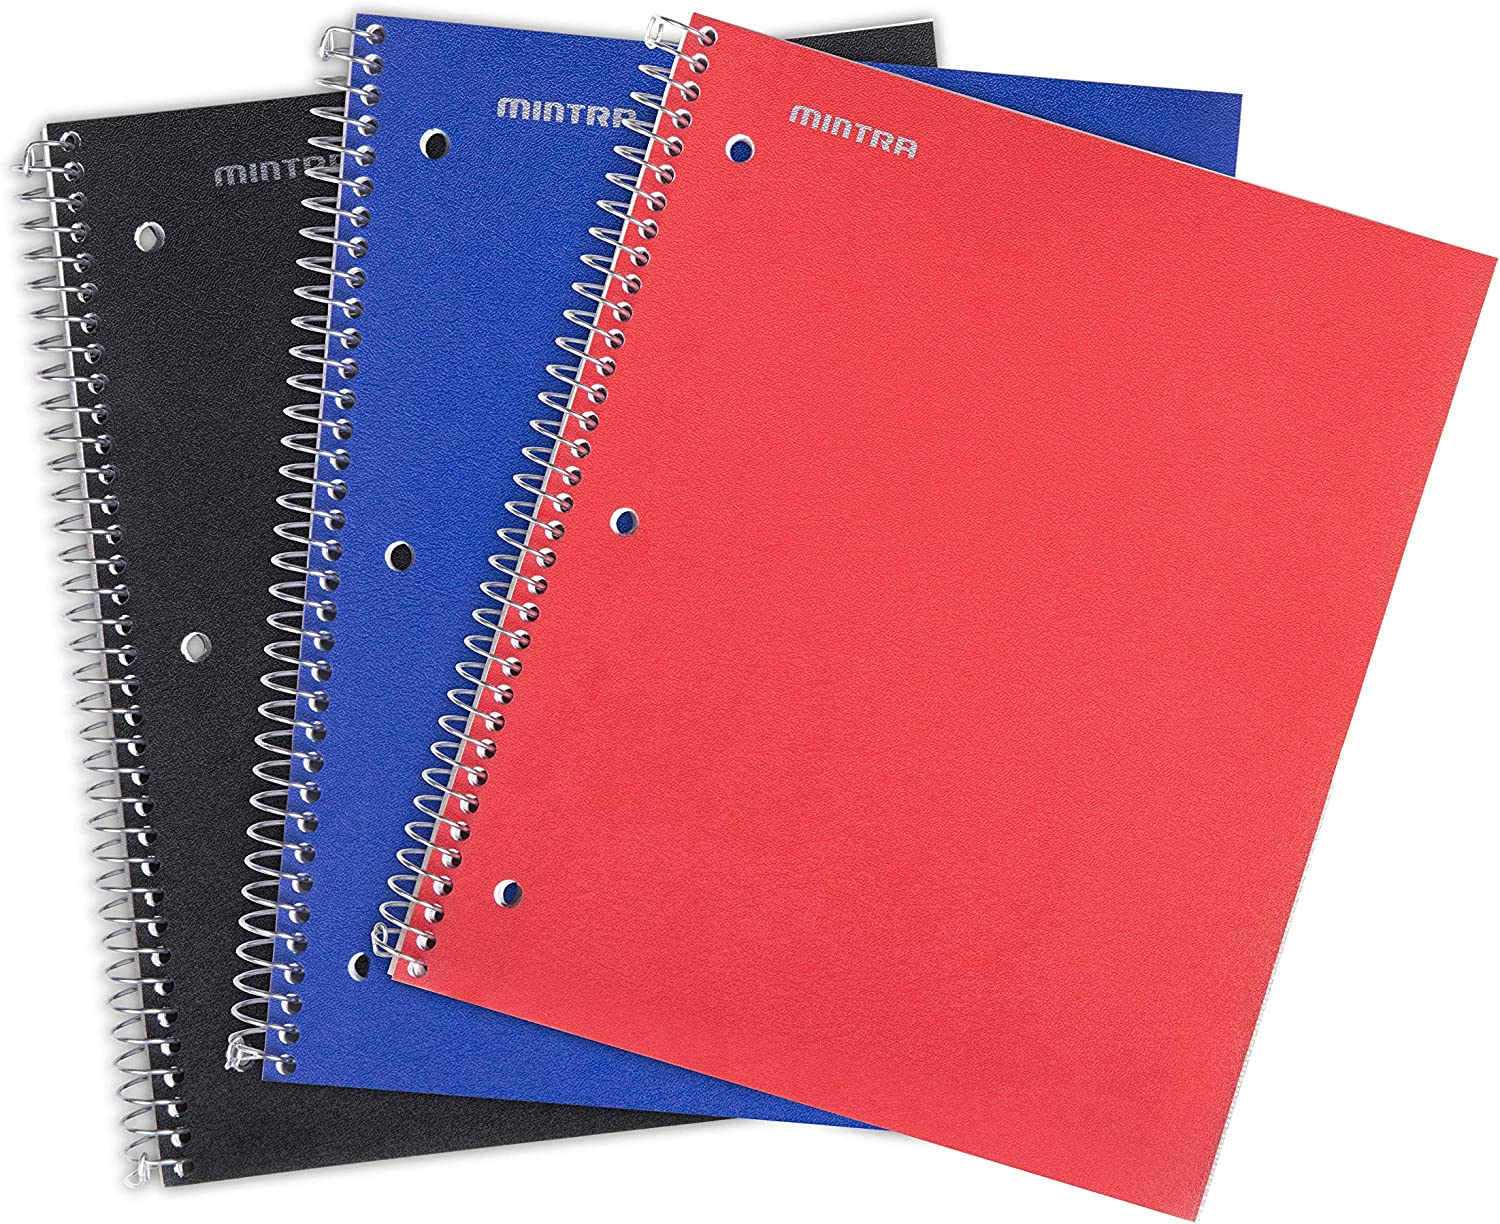 Arctic Ice, Chili Oil, Green Olive, Wide Ruled 3pk 1 Subject, Mintra Office Durable Spiral Notebooks